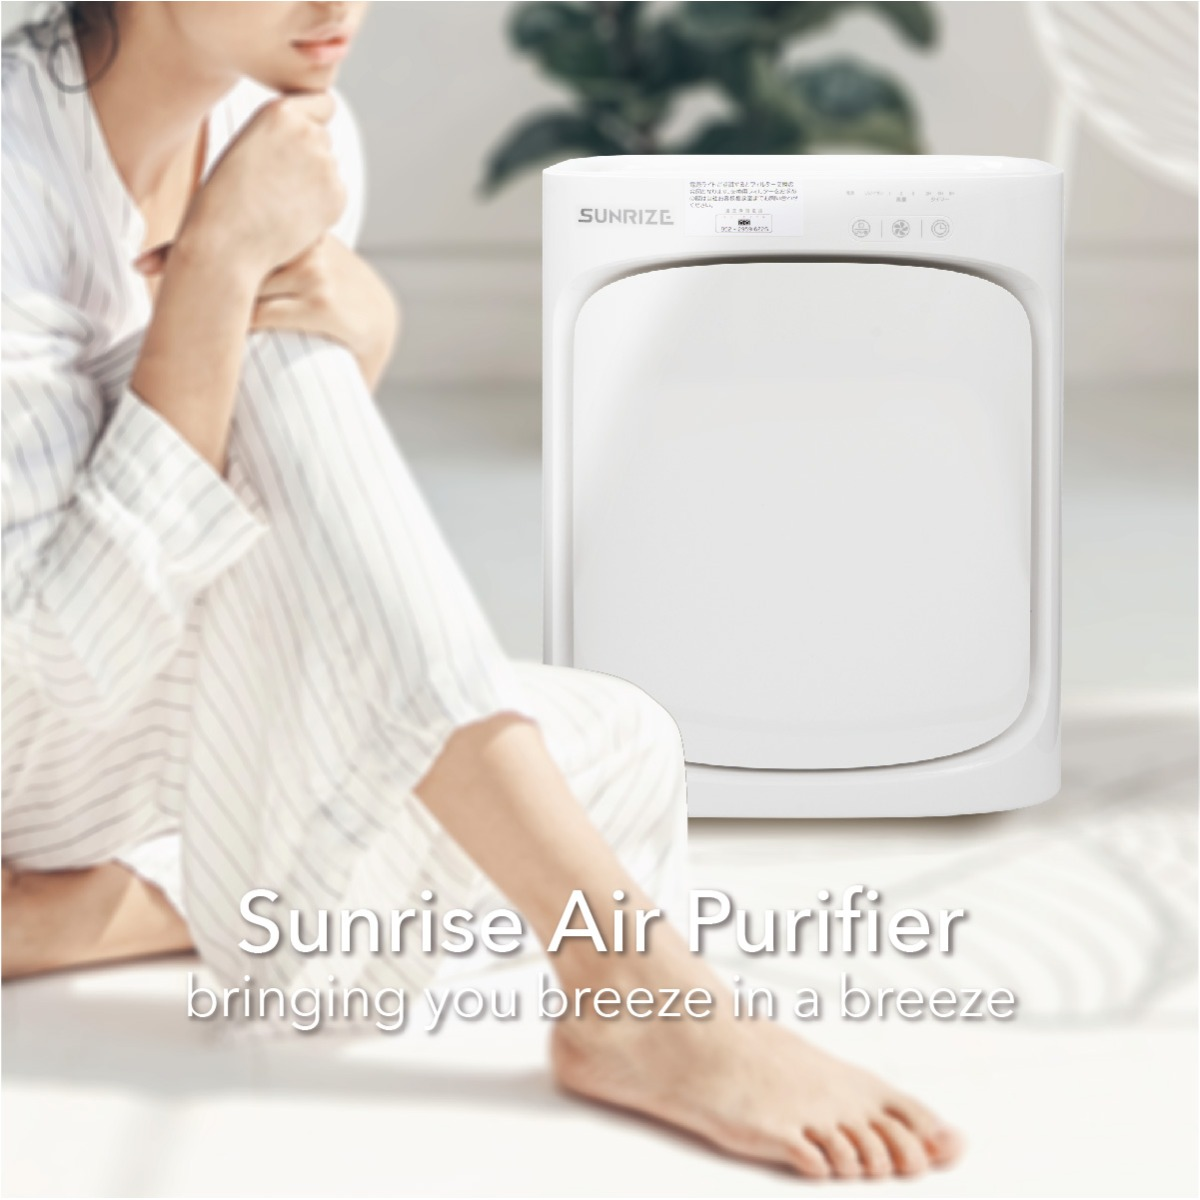 3 Home Appliance Upgrades That Are Worth Getting - Sunrize Air Breeze HEPA Air Purifier